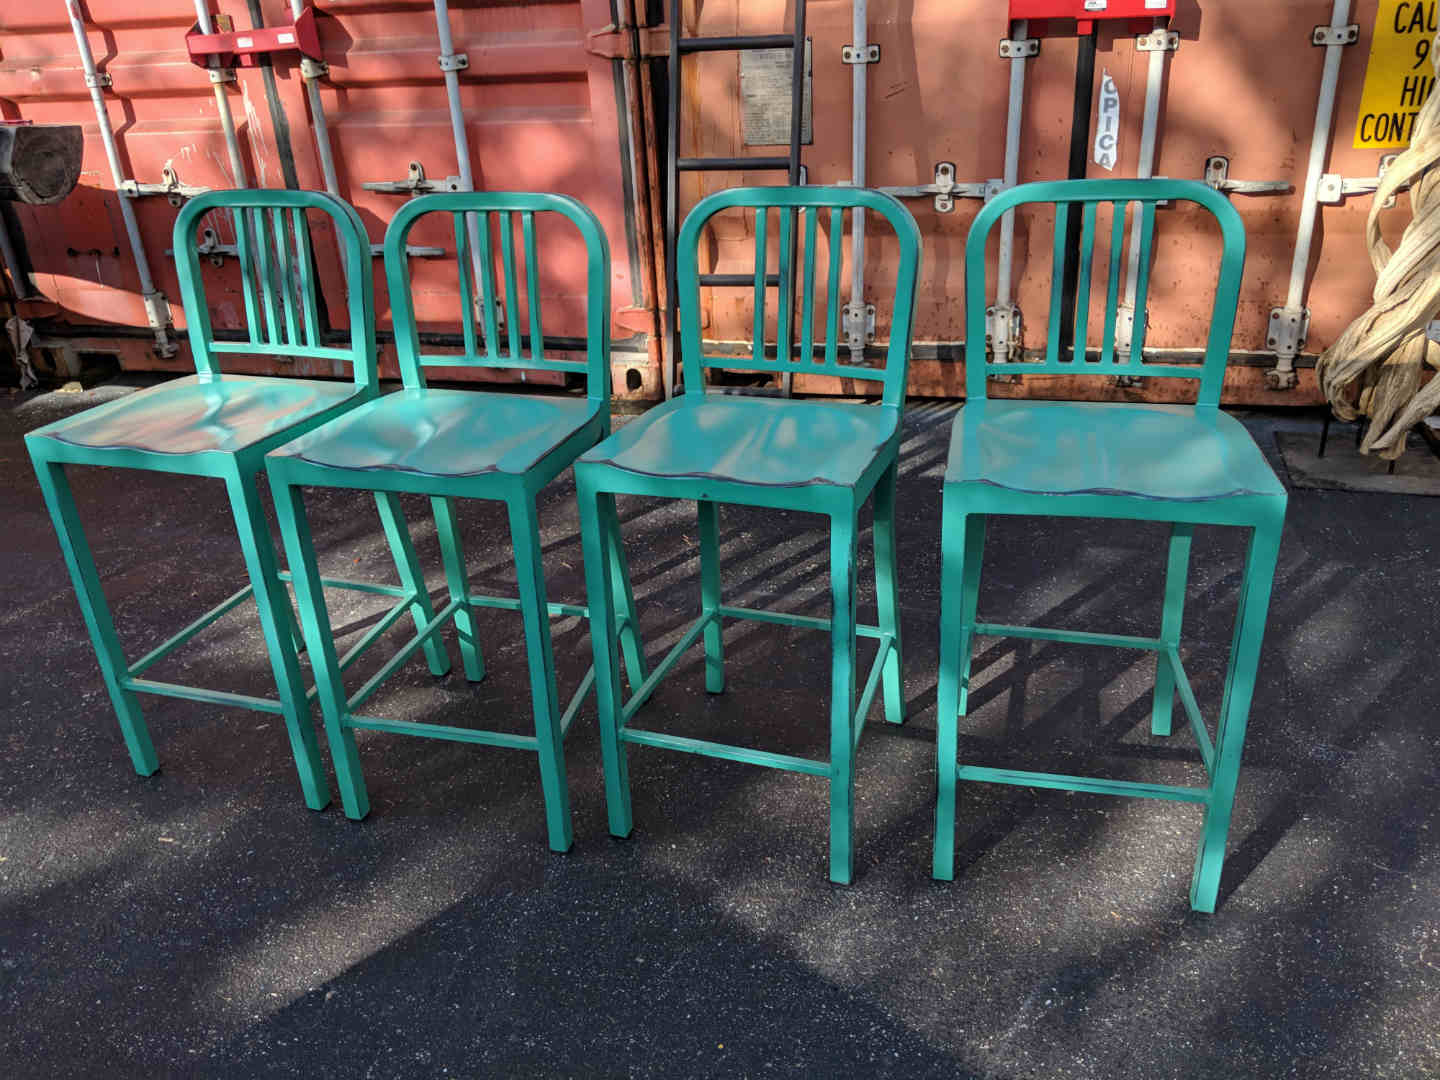 Decor Direct Wholesale Warehouse-Bar Chairs and Counter Stools